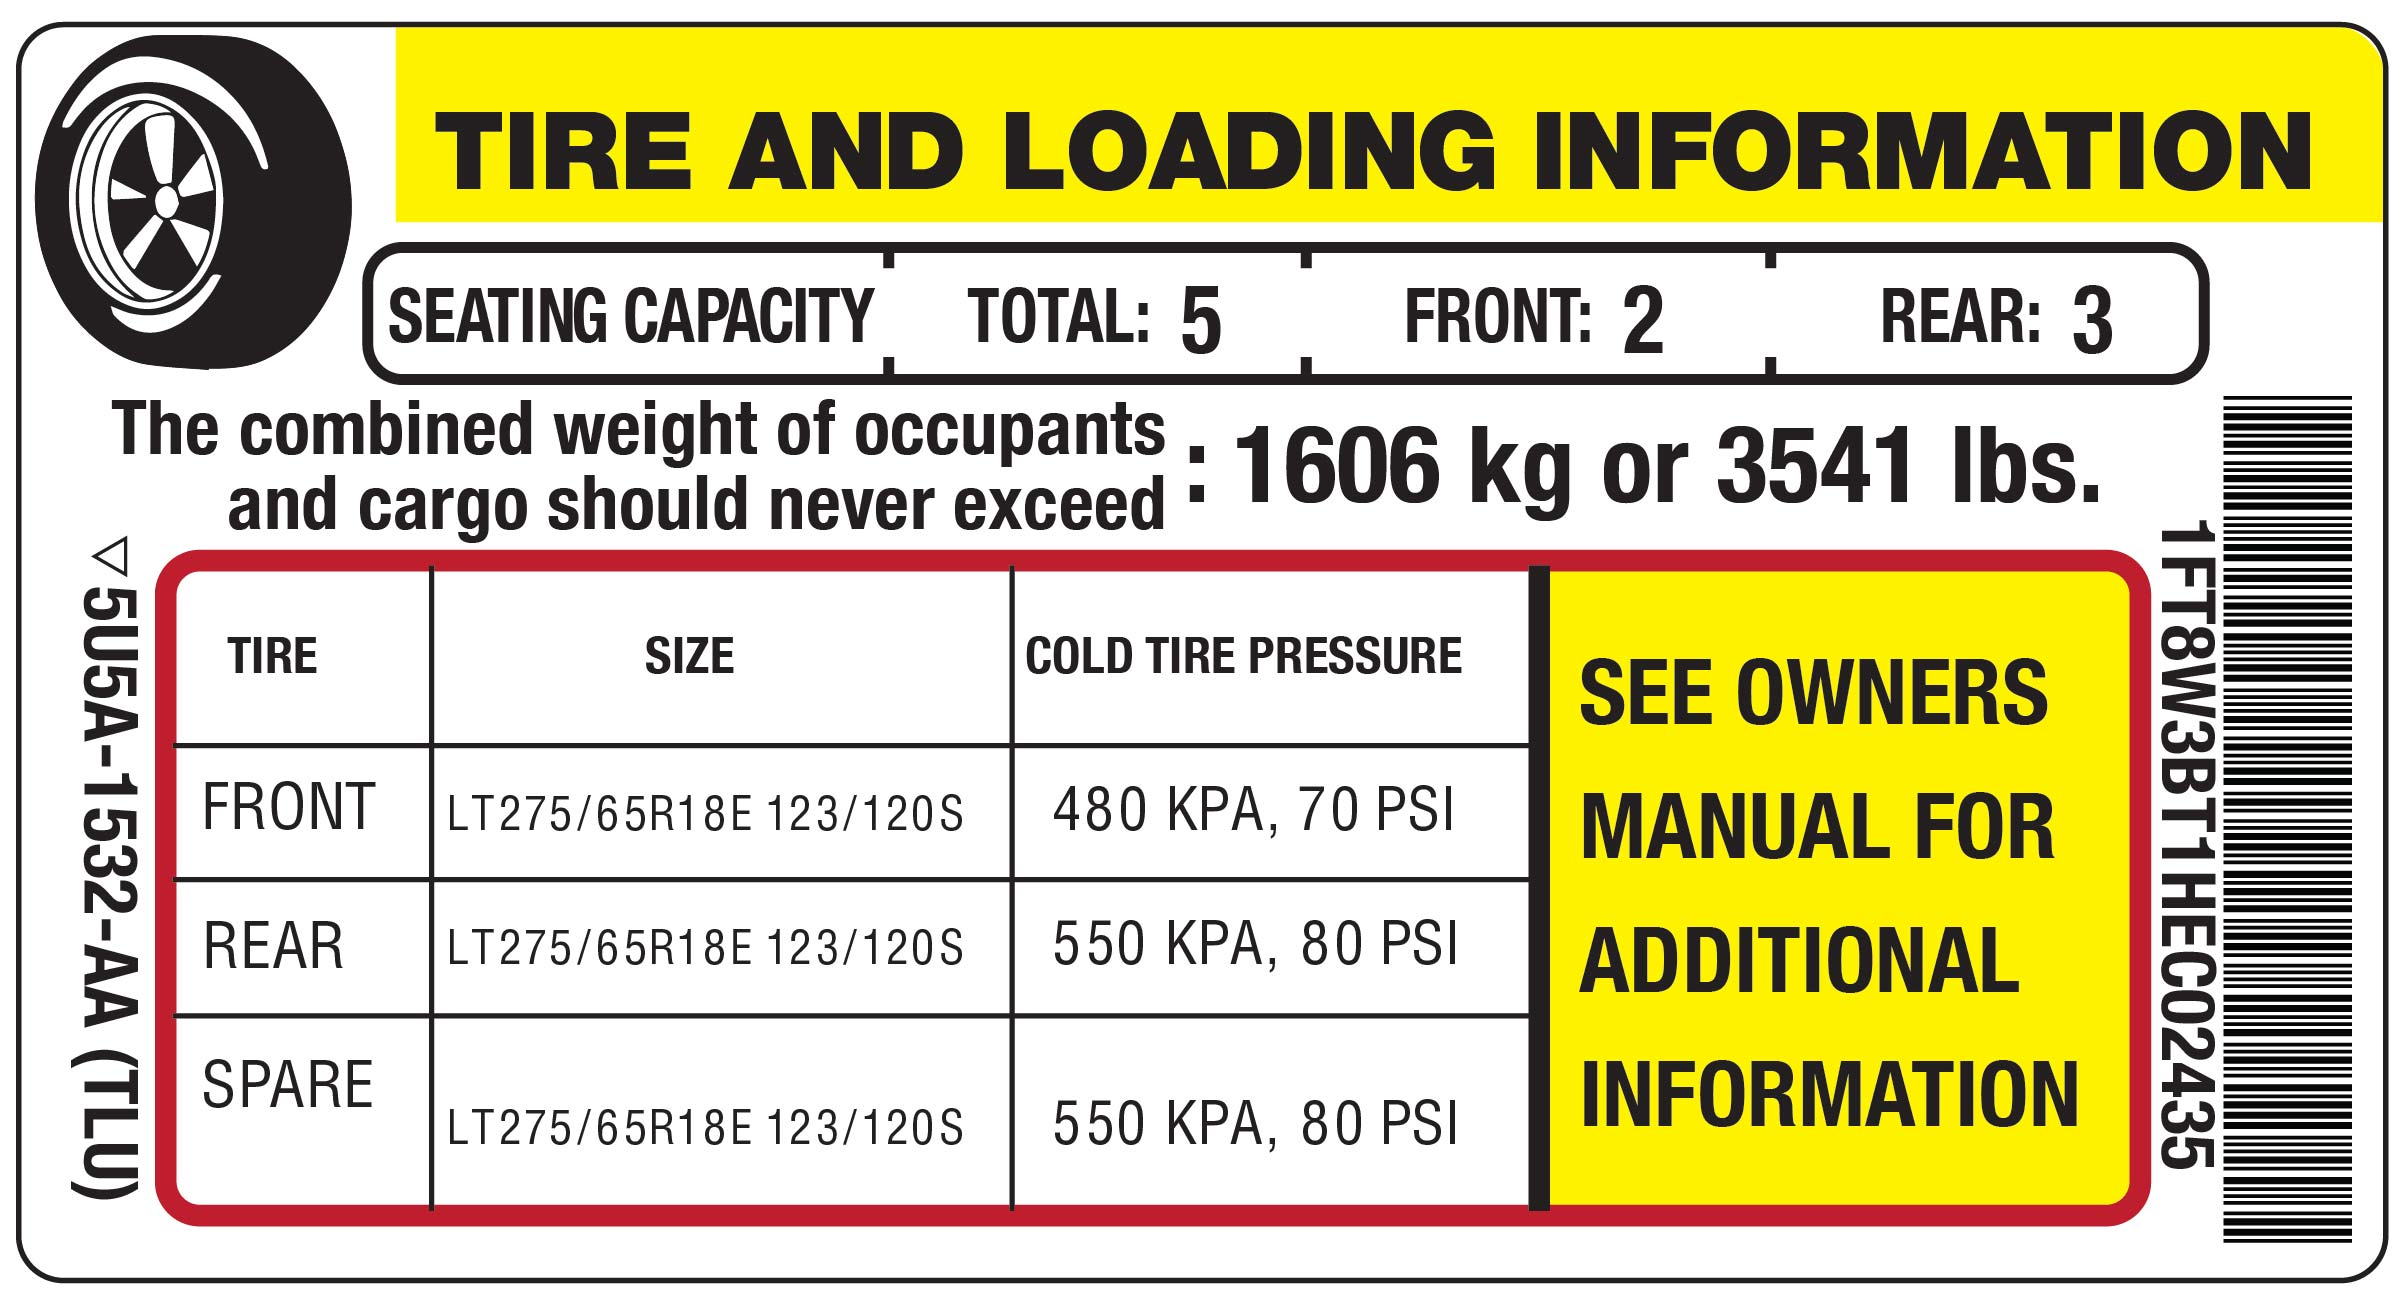 Vehicle door placard showing front, rear and spare tire cold tire pressure.